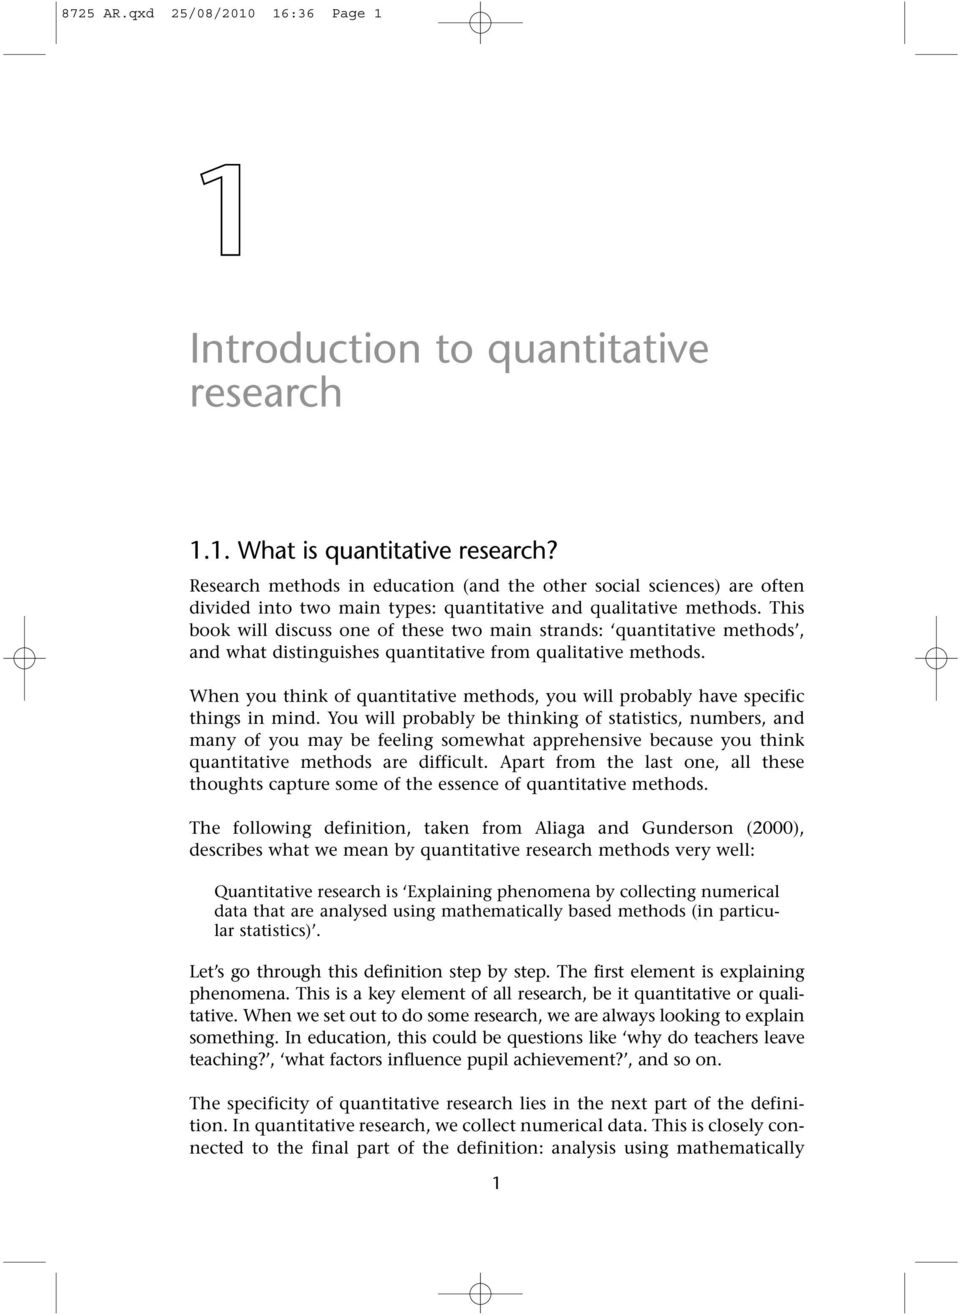 This book will discuss one of these two main strands: quantitative methods, and what distinguishes quantitative from qualitative methods.